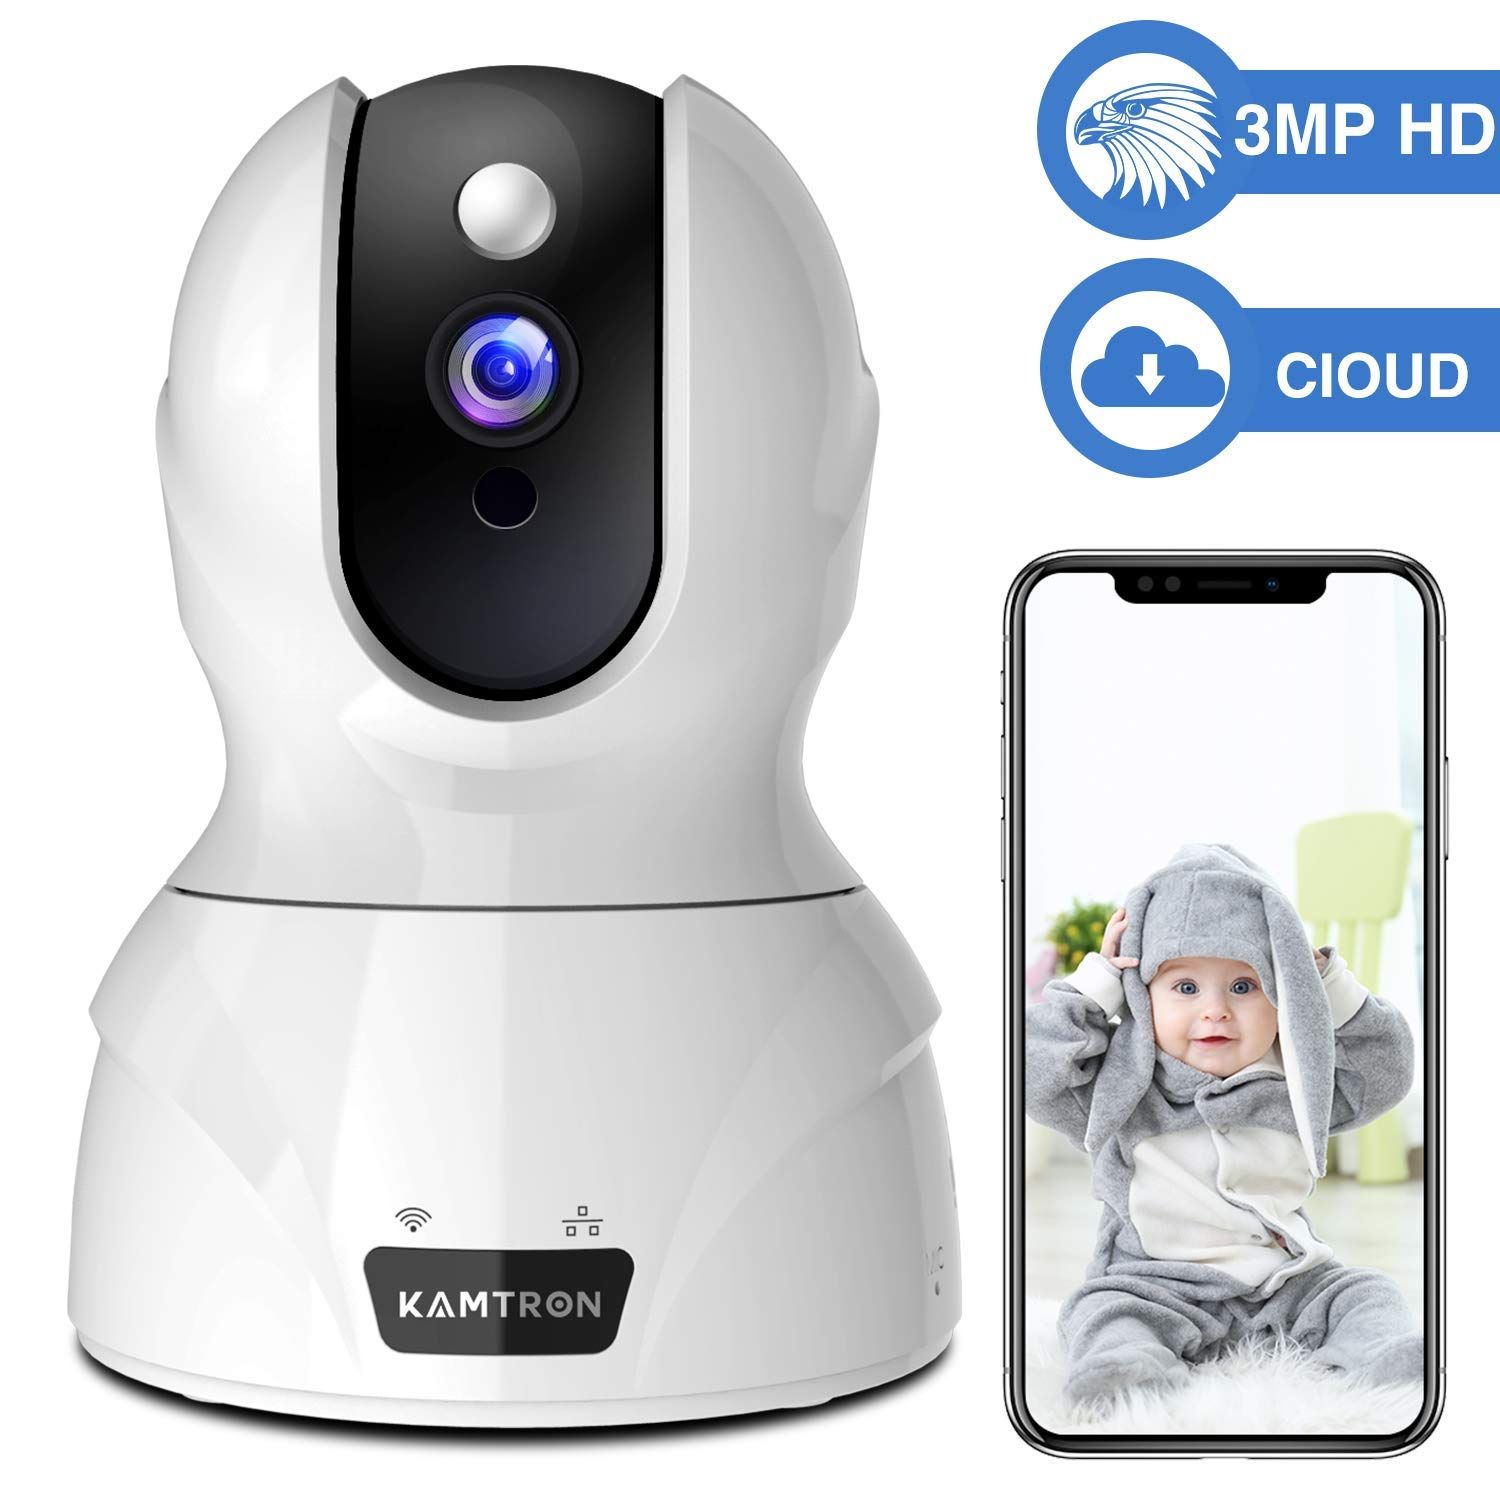 Security Camera 1536P Pet Camera – KAMTRON WiFi Wireless Home Camera Full HD 3MP IP Video Surveillance System with IR Night Vision, Motion Detection and Two-Way Audio – Cloud Storage, White